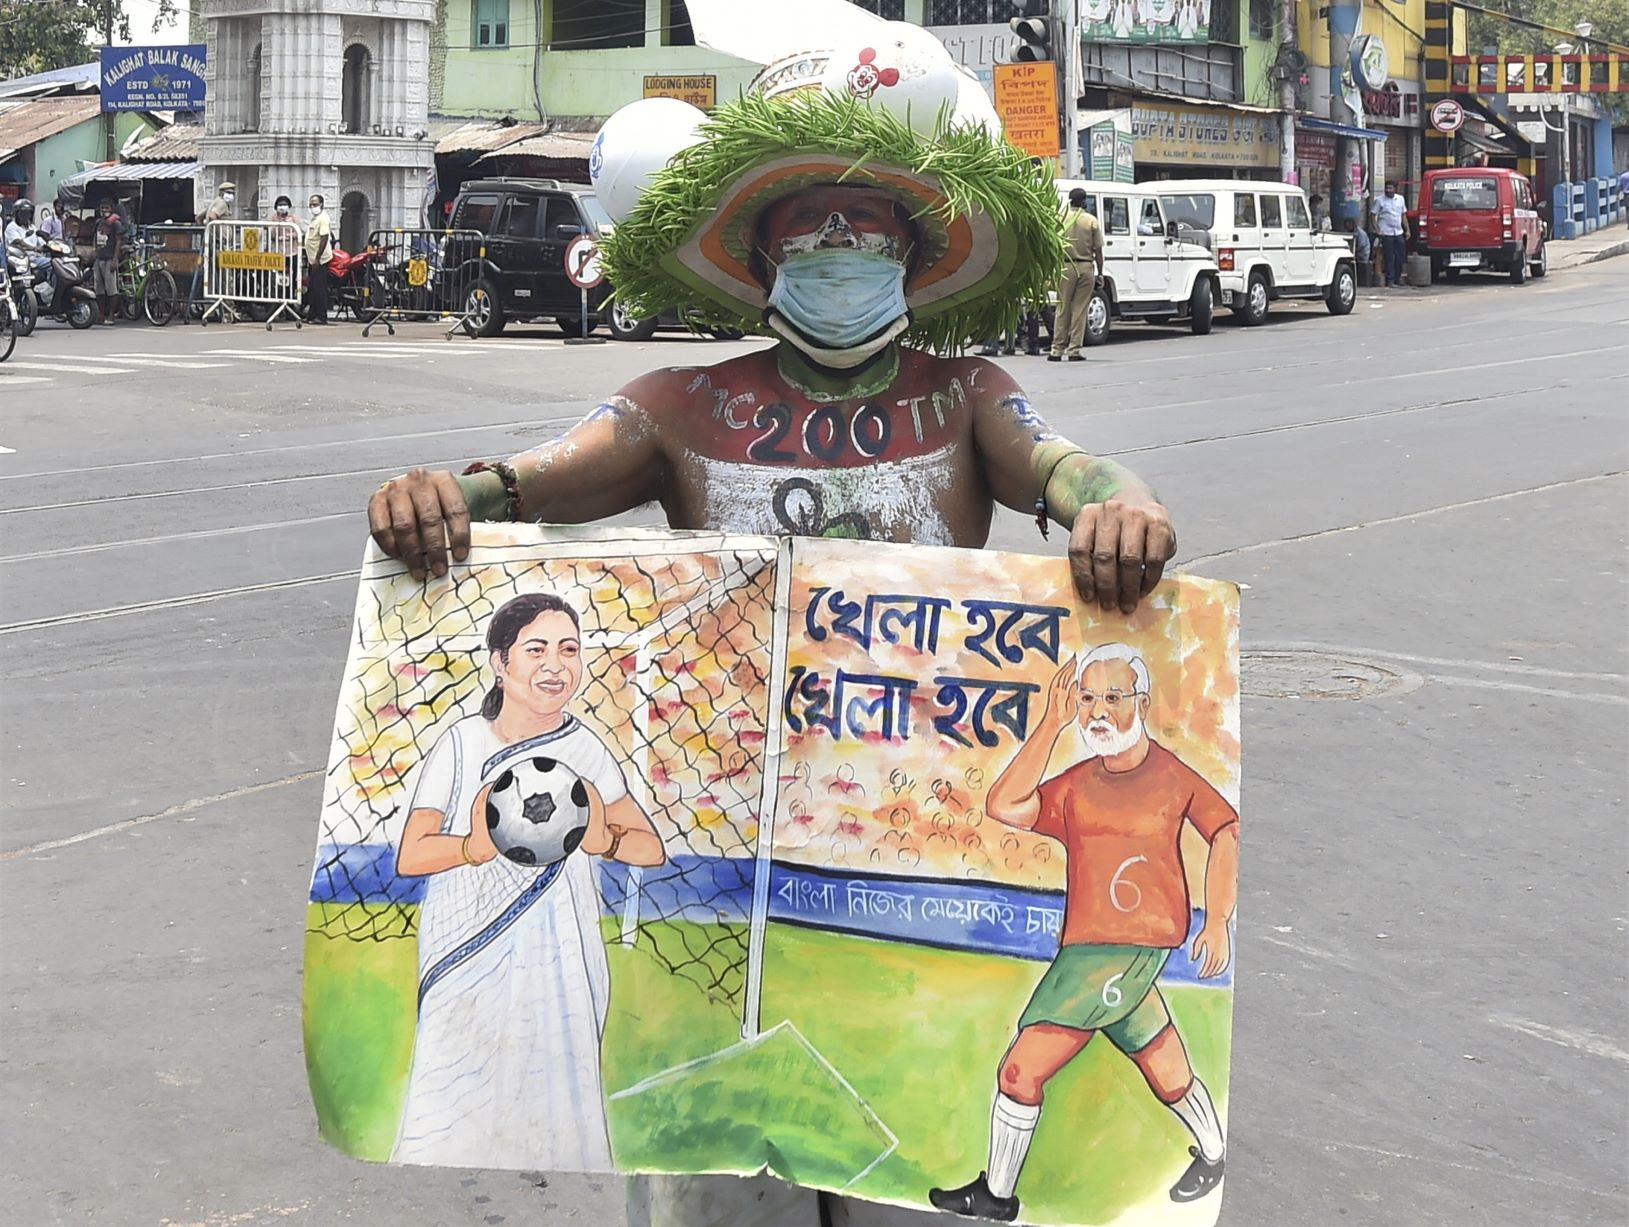 Kolkata: A TMC supporter holds a placard outside West Bengal Chief Minister Mamata Banerjees residence at Kalighat during the counting of West Bengal Assembly poll, as the state government observes a shutdown to combat the Covid-19 situation, no gathering and rallies are strictly prohibited in this situation in Kolkata, Sunday, May 2, 2021.(PTI Photo/Swapan Mahapatra)(PTI05 02 2021 000061B)